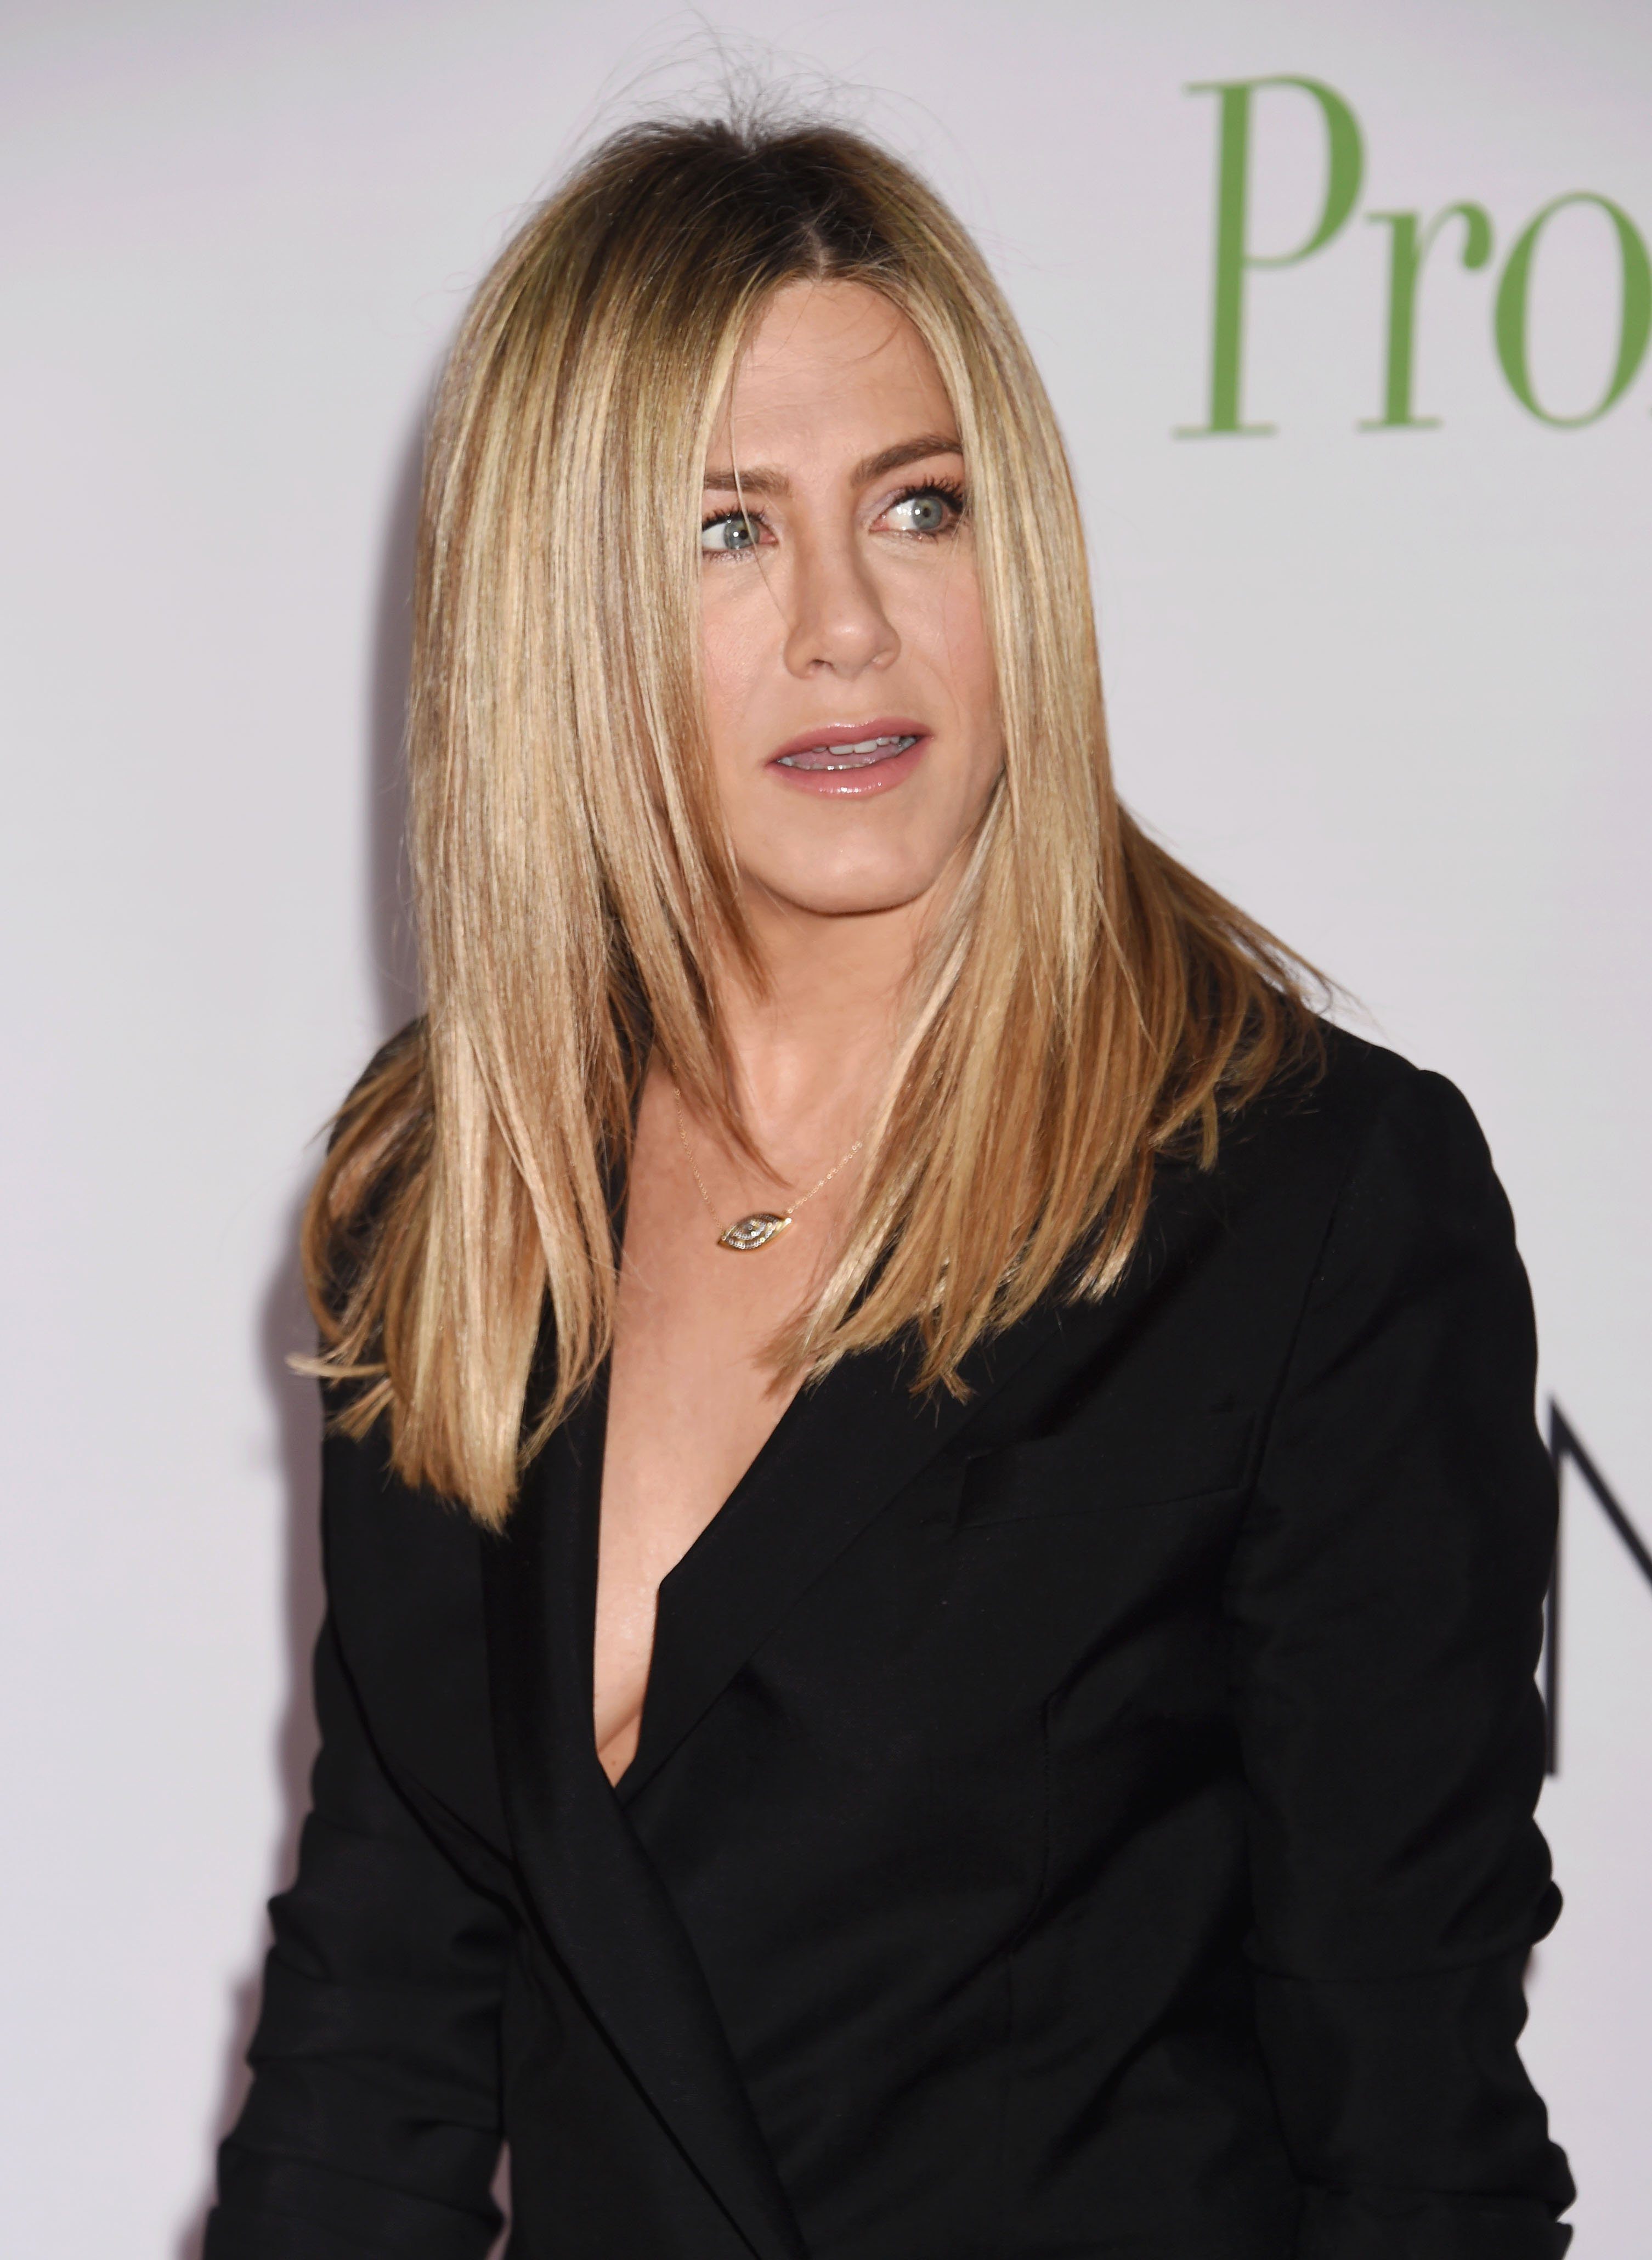 """Jennifer Aniston attends the Open Roads World Premiere of """"Mother's Day"""" in 2016. 